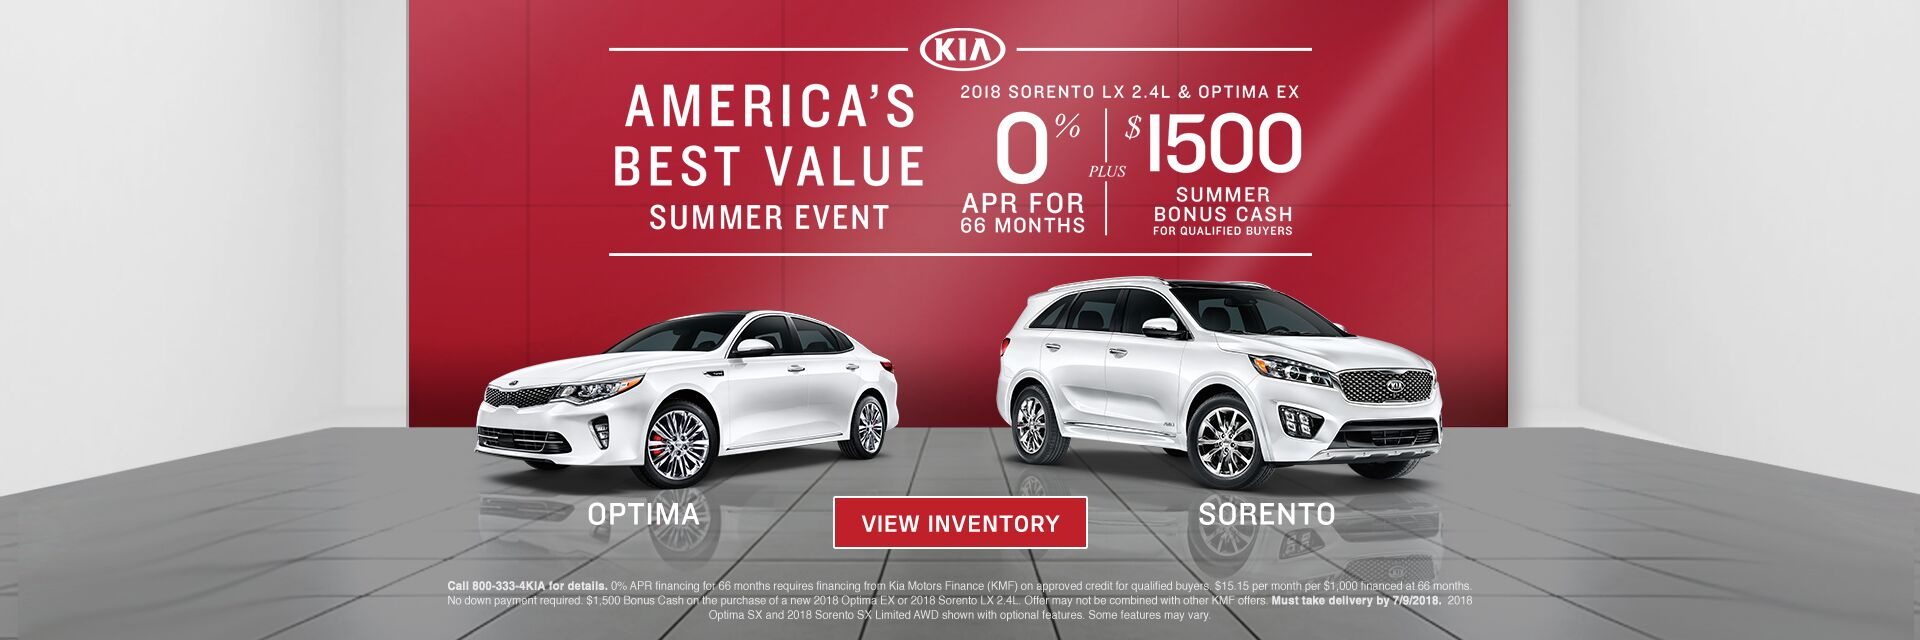 America's Best Value Summer Event at Kia of Norwood